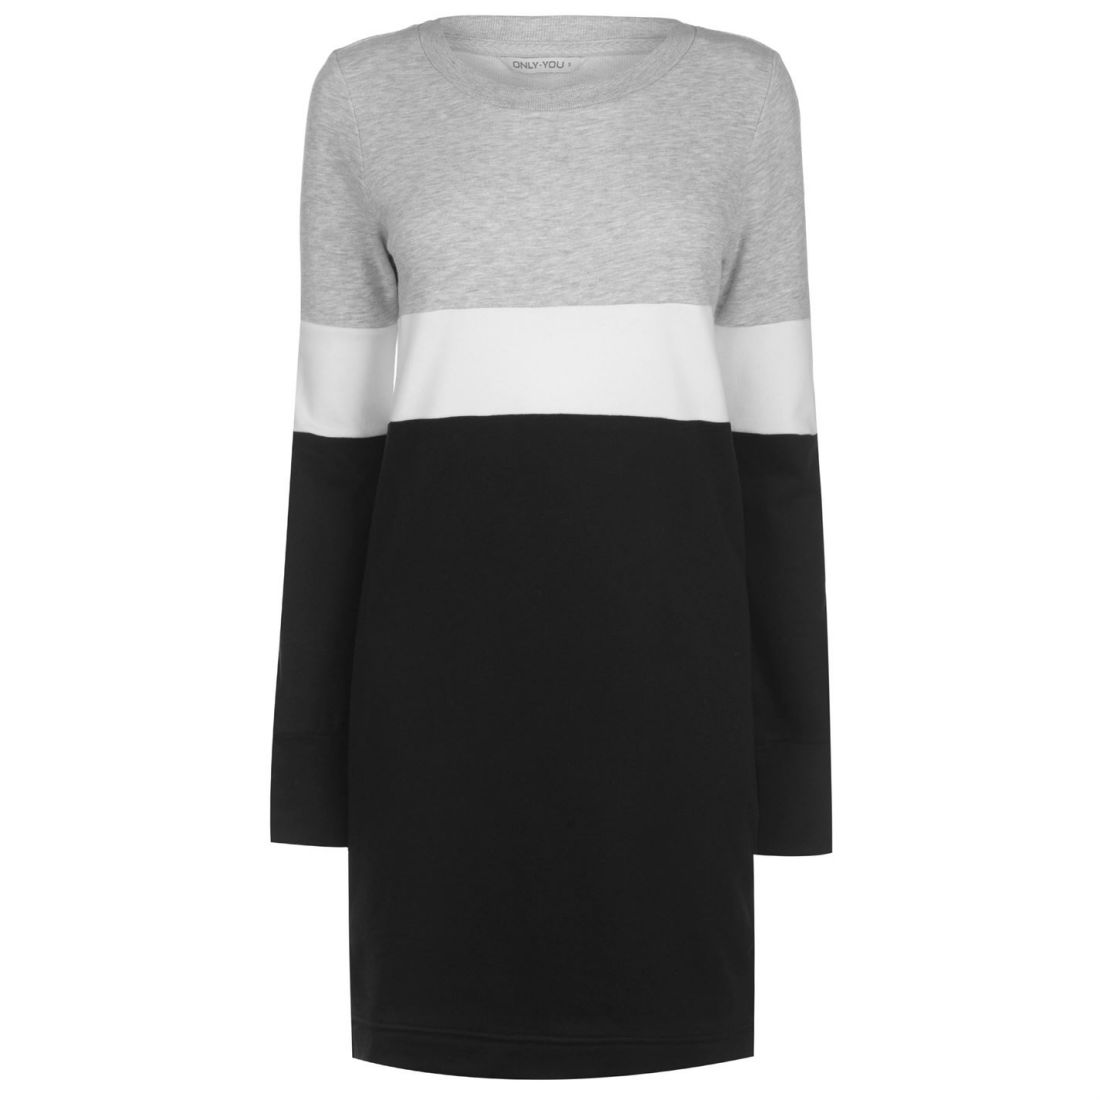 234a4eae2203 Image is loading Only-Womens-Dorit-Jumper-Dress-Crew-Sweater-Pullover-